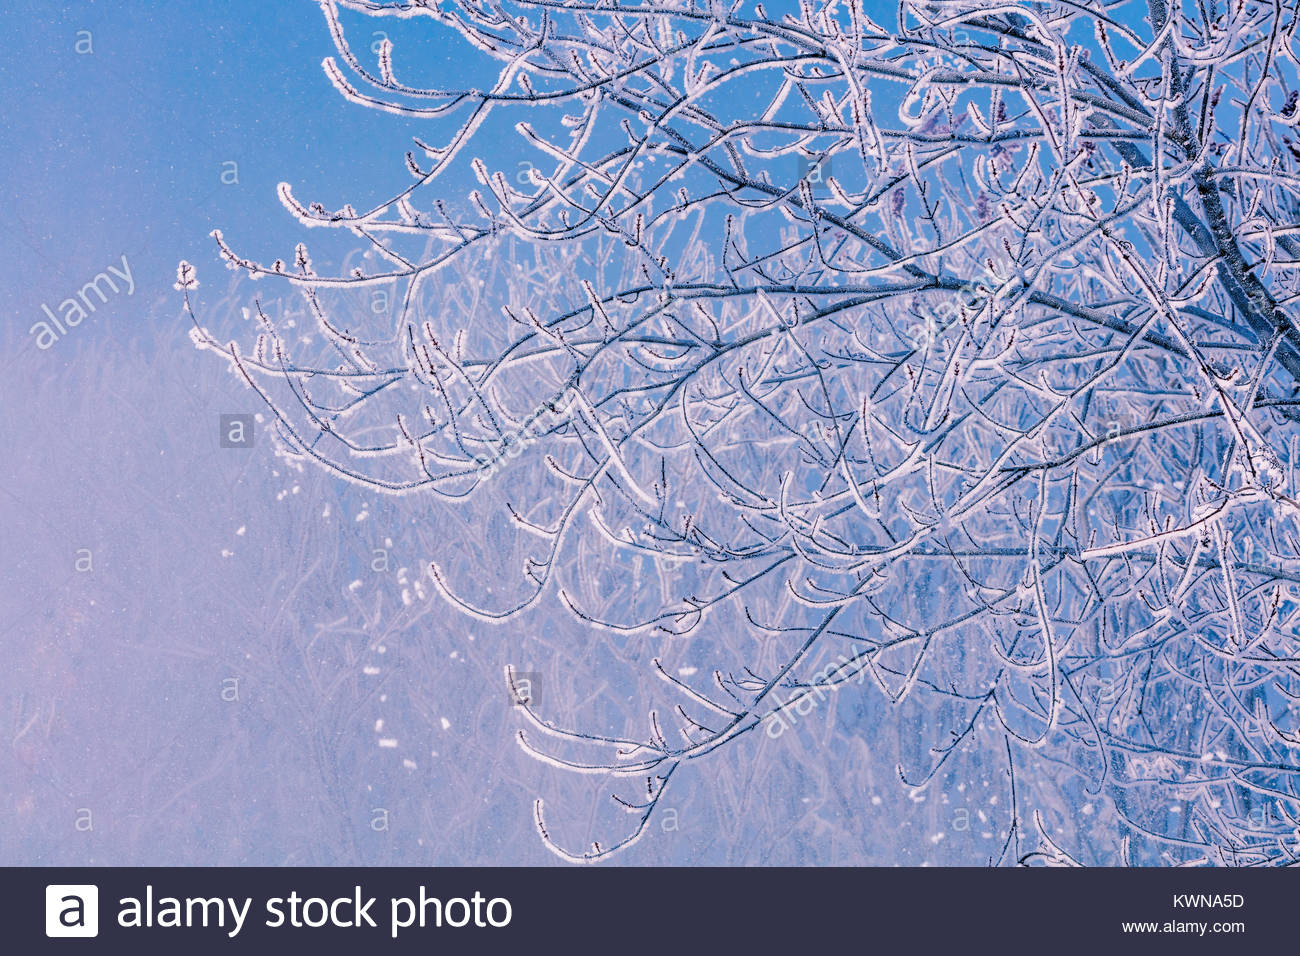 Winter pattern of hoarfrost, hoar frost, radiation frost, pruinaice, surface hoar, frost, blowing from tree branches - Stock Image